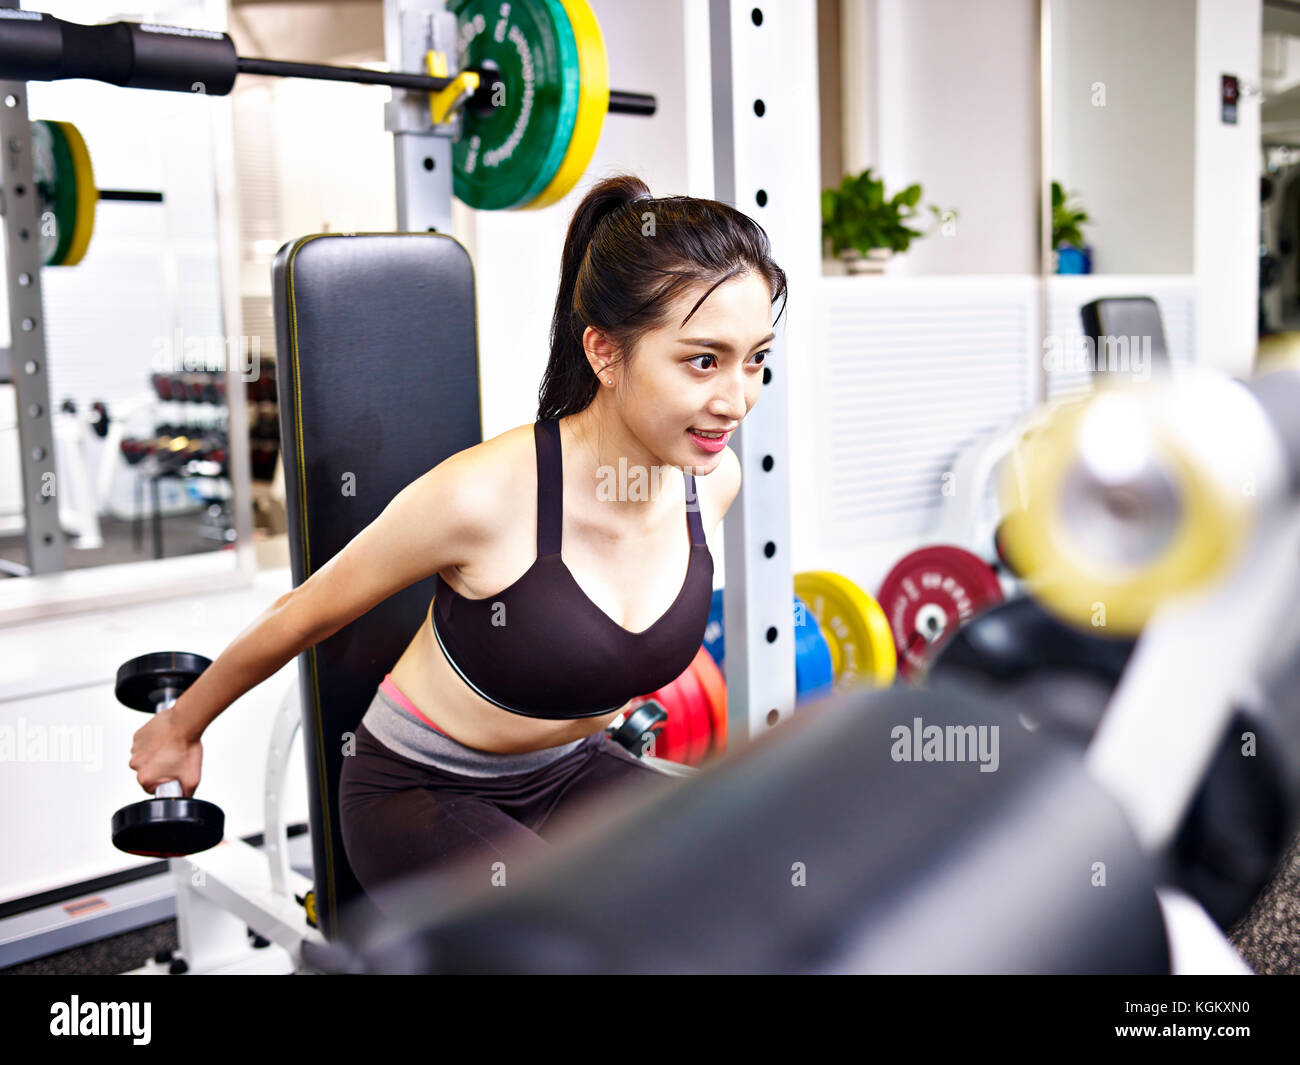 young asian woman working out exercising in gym using dumbbells. - Stock Image